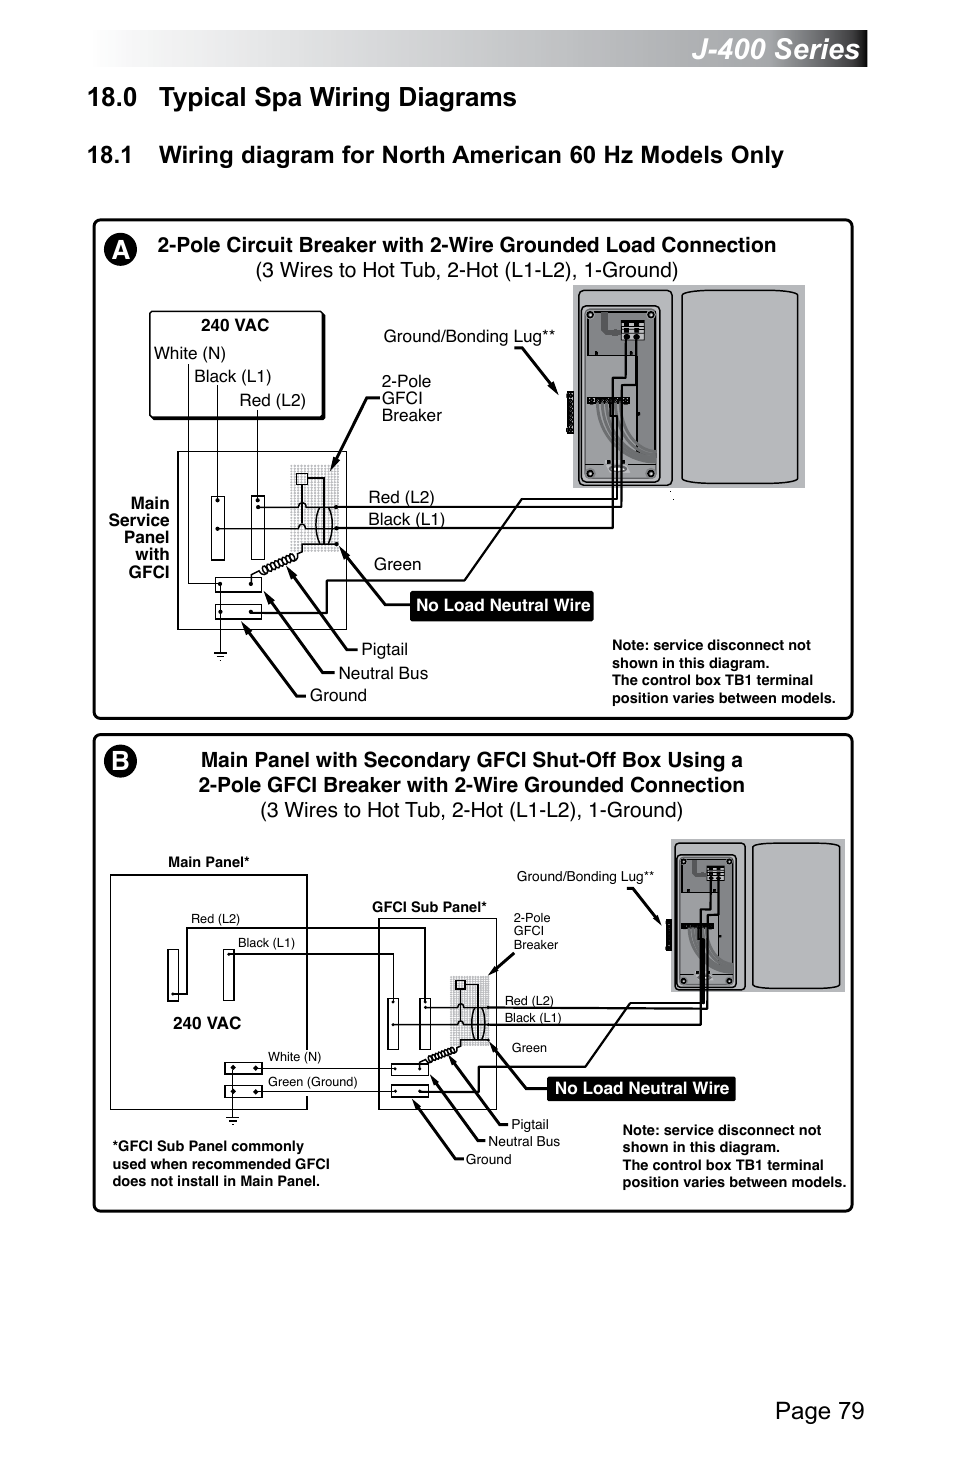 Typical Wiring Diagram : Typical spa wiring diagrams j series page